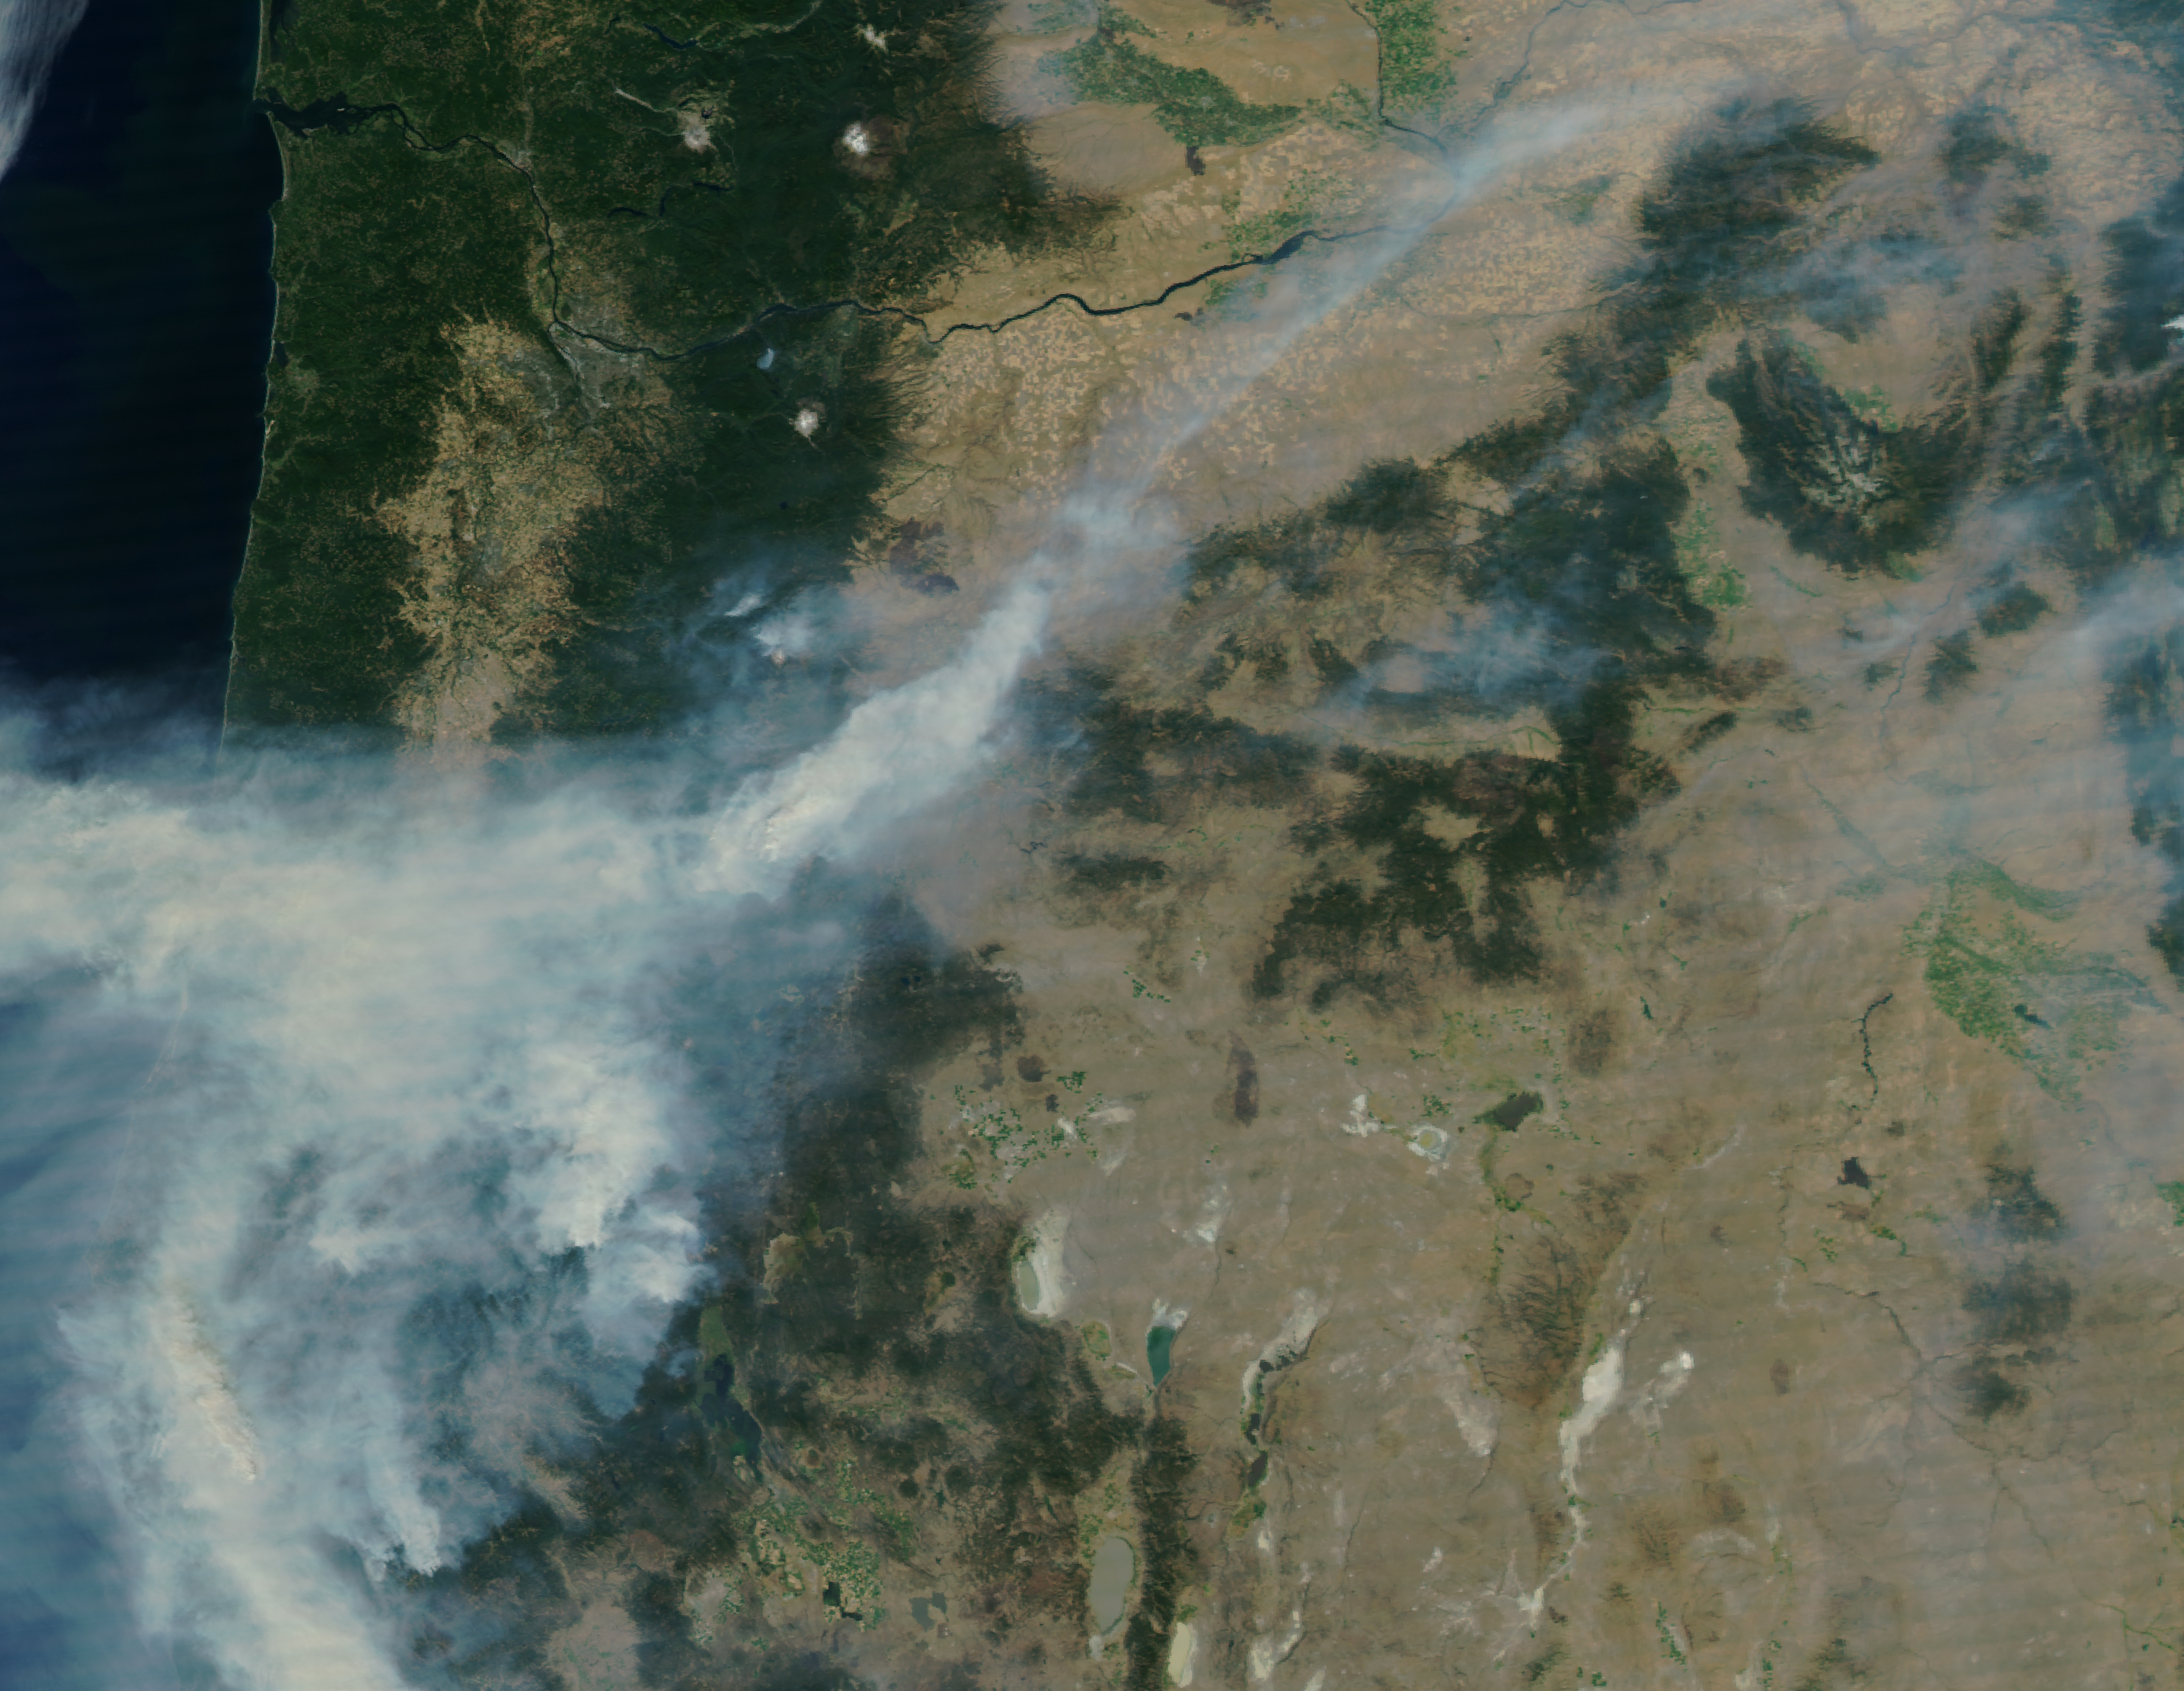 NASA satellite image shows Oregon on September 2, 2017. Air quality in Western Oregon ranges into the Unhealthy and even Hazardous categories over the Labor Day weekend thanks to smoke from forest fires.